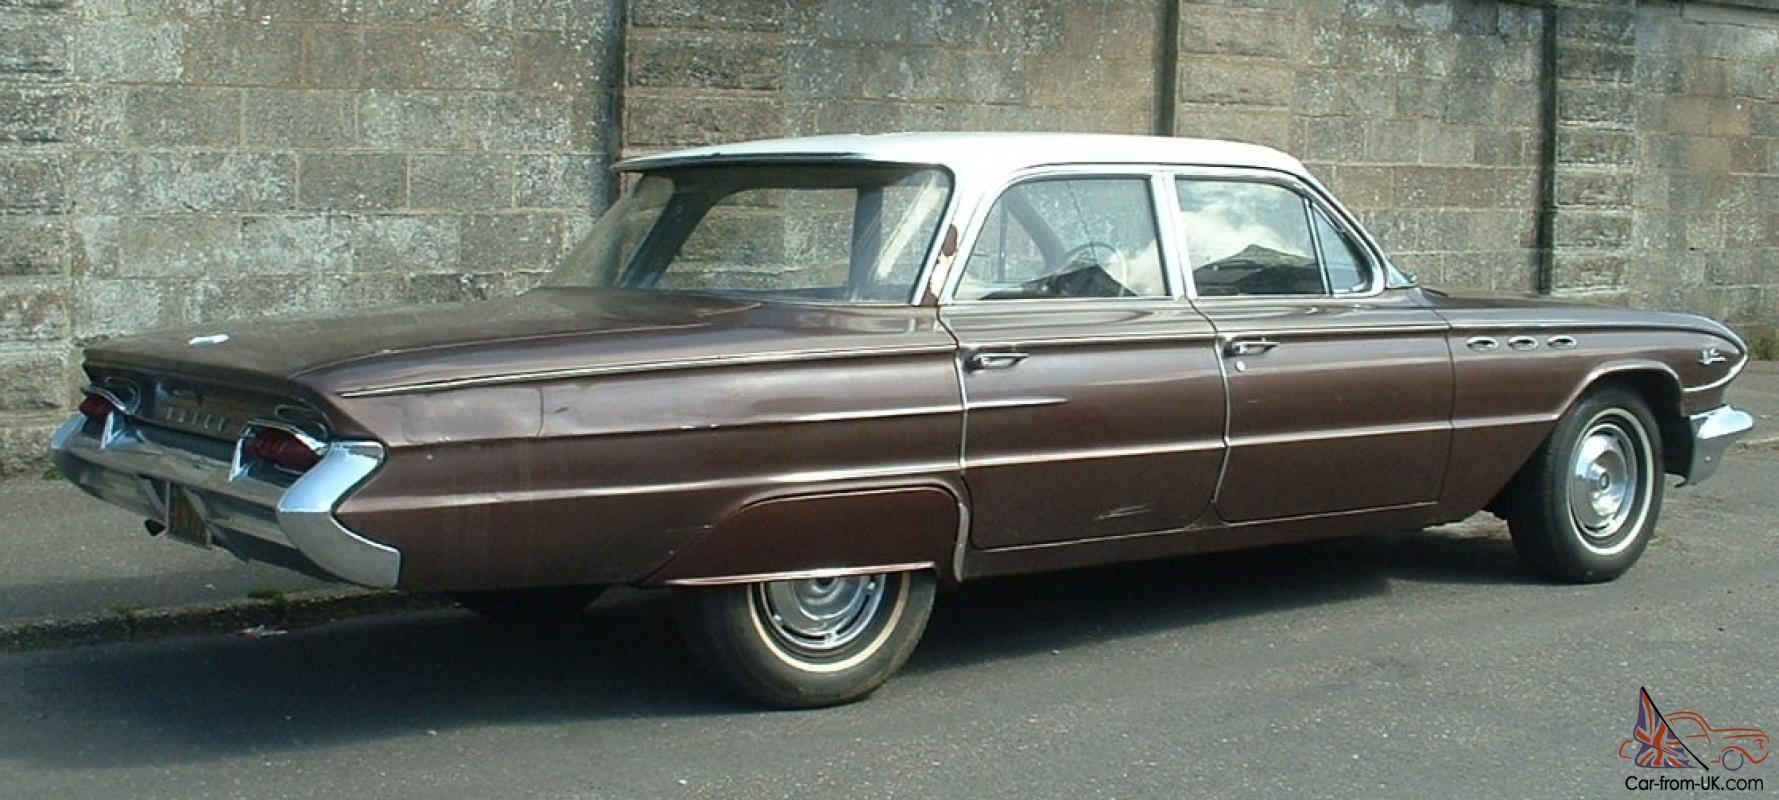 Caballero in addition Sale also Sale besides 21539 1967 Big Block El Camino besides 1192904052. on lowrider car seats